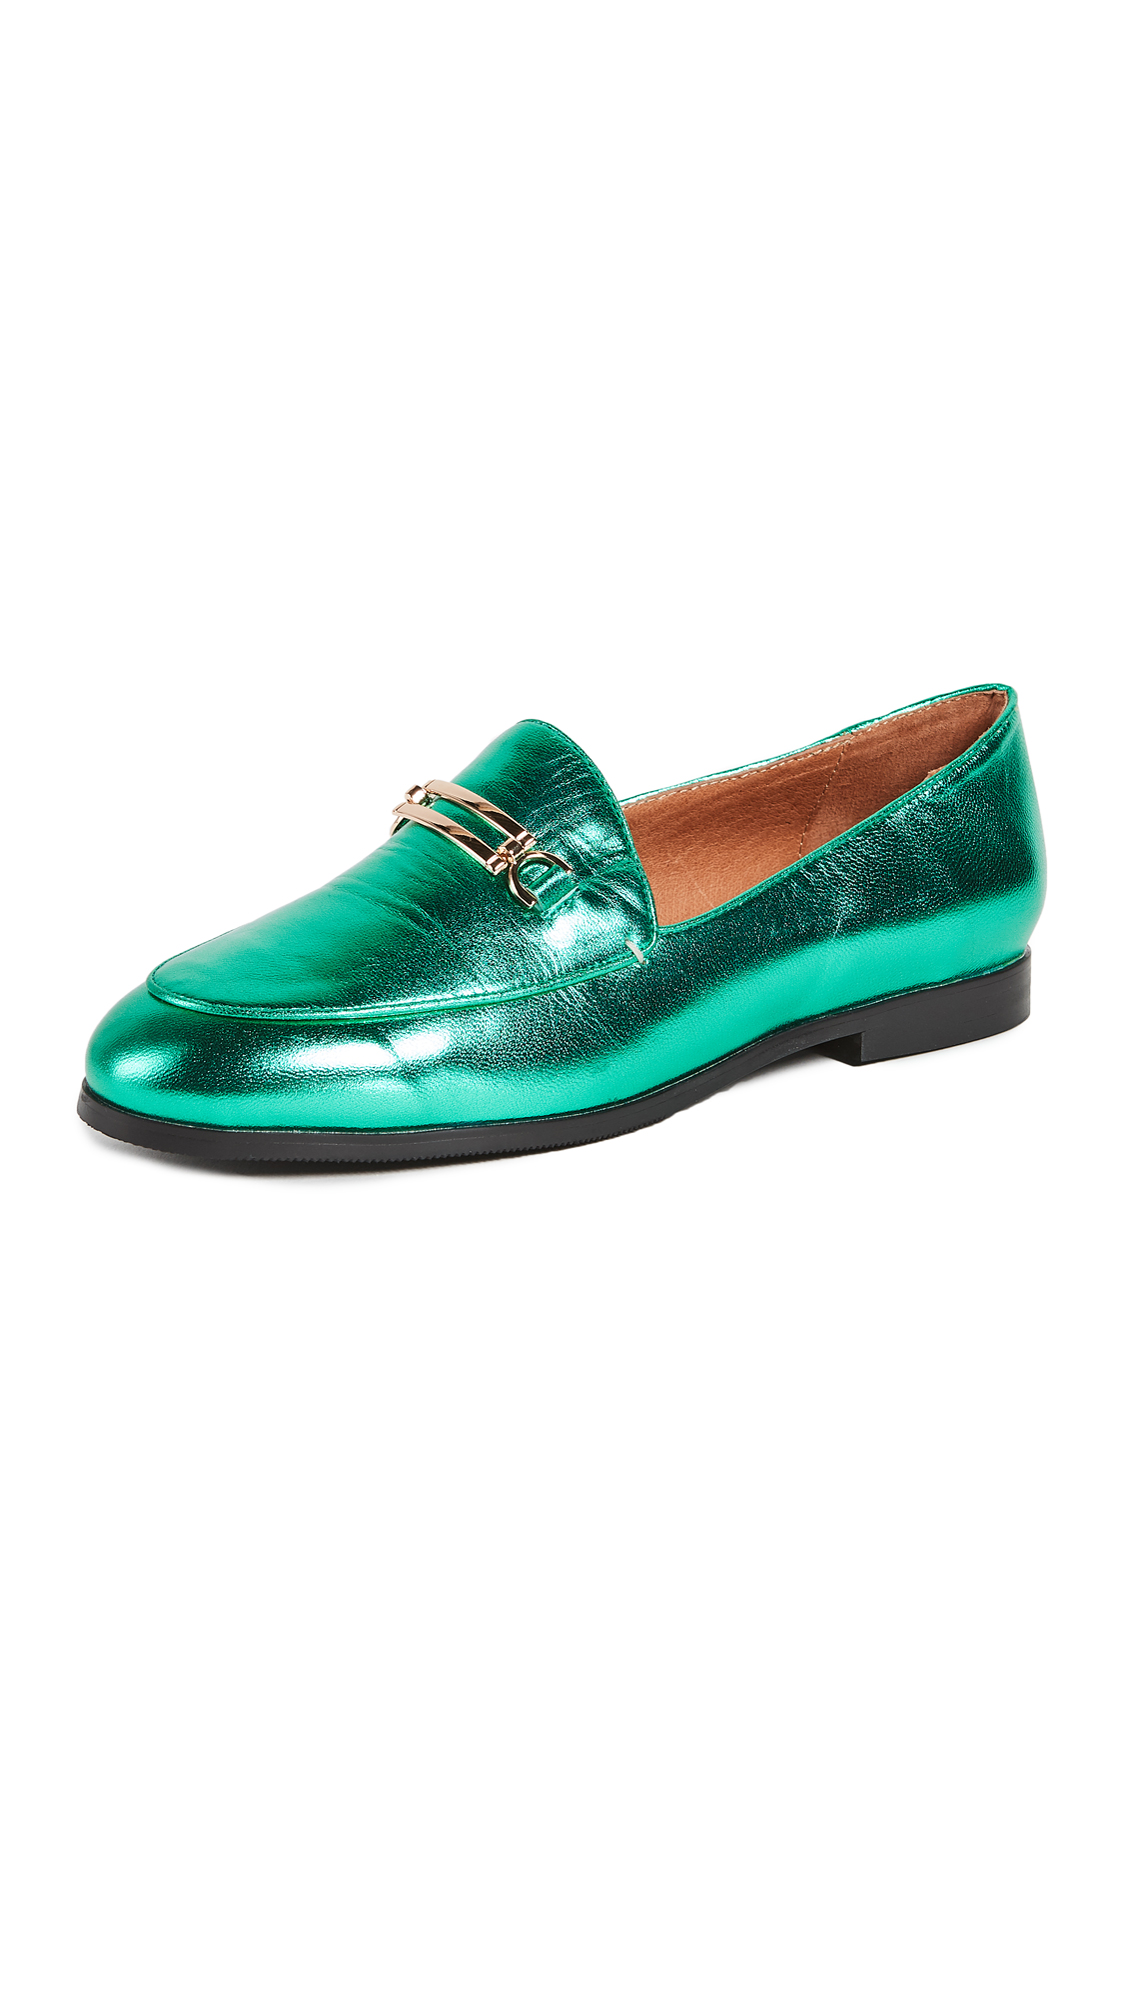 Matiko Leslie Metallic Loafers - Green